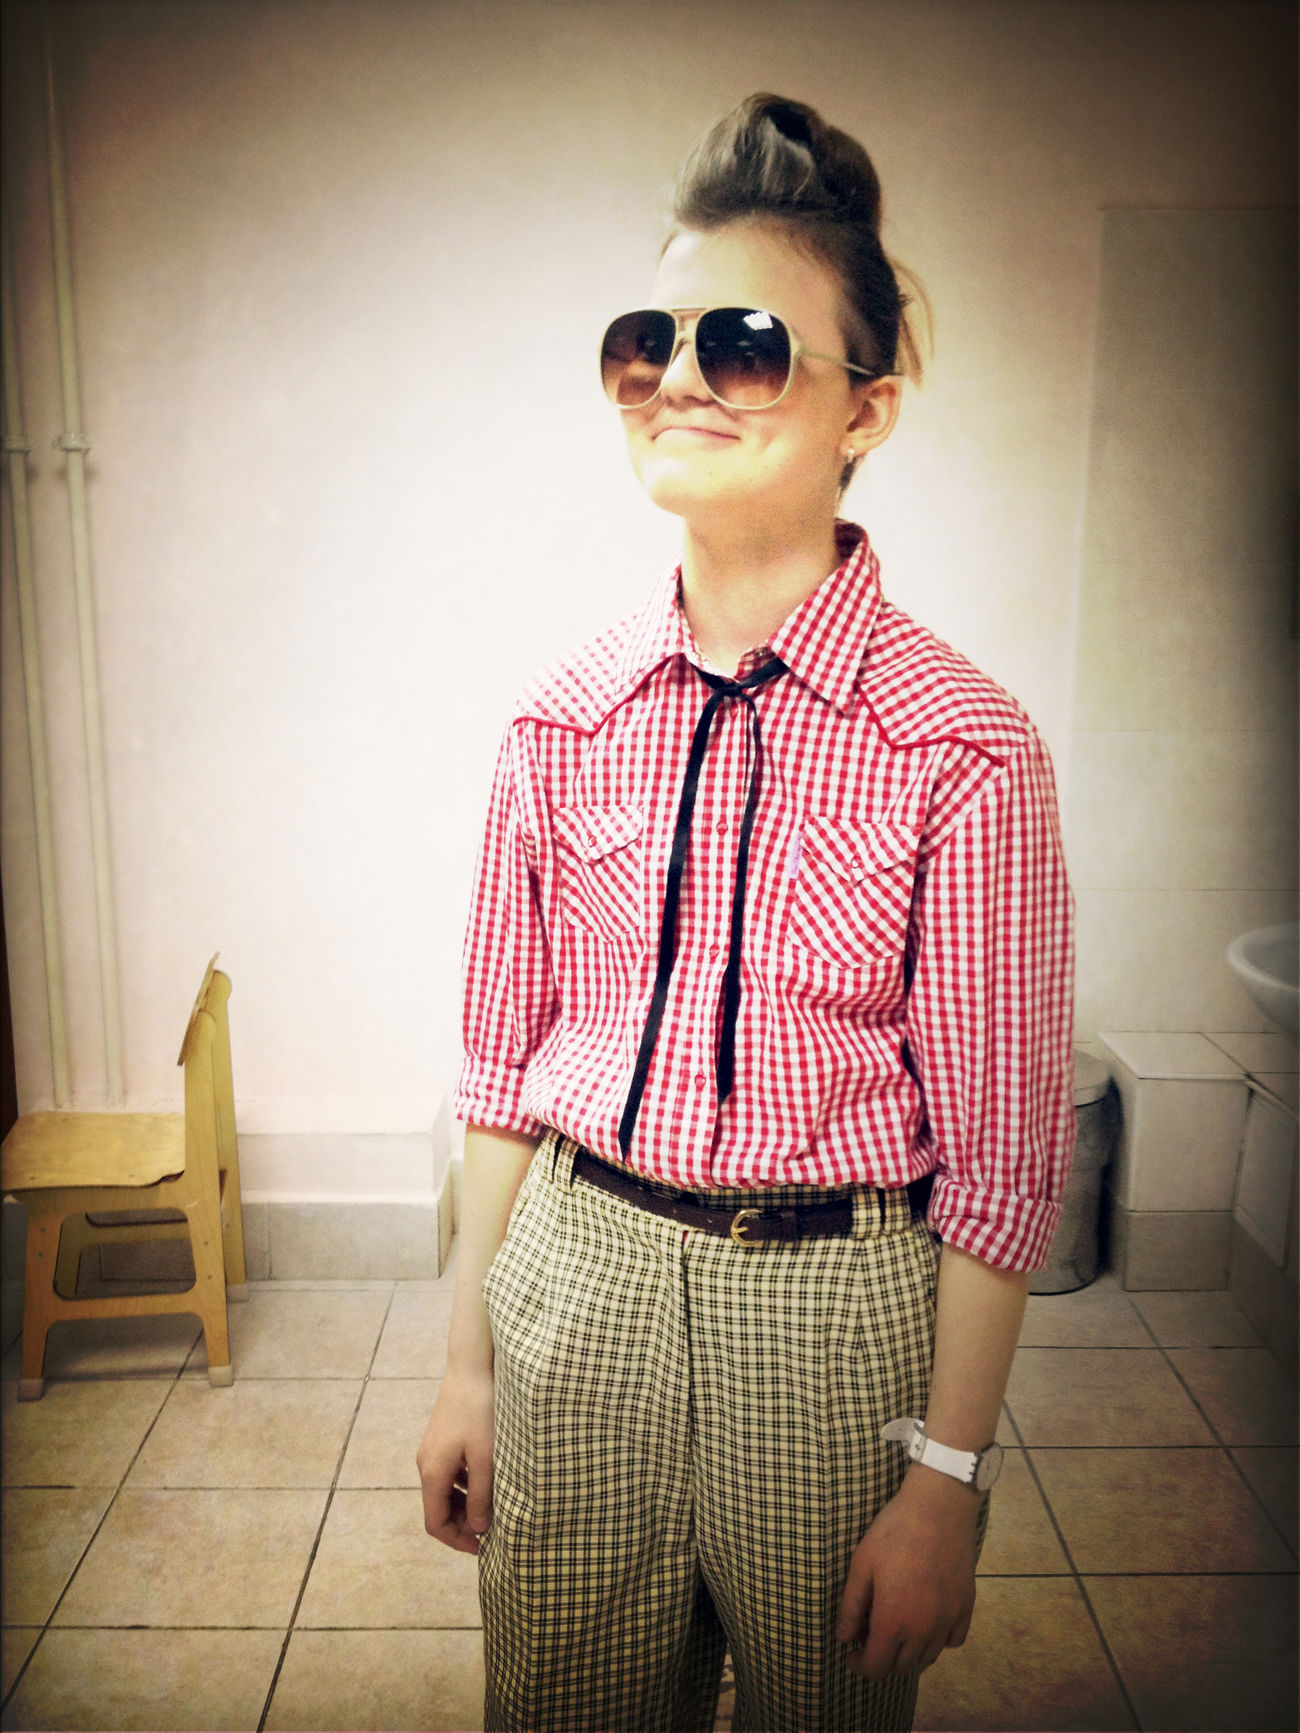 BEAUTIFUL NASTYA! Crazy Scientist, you're amazing in this clothes and with this hairstyle! :)